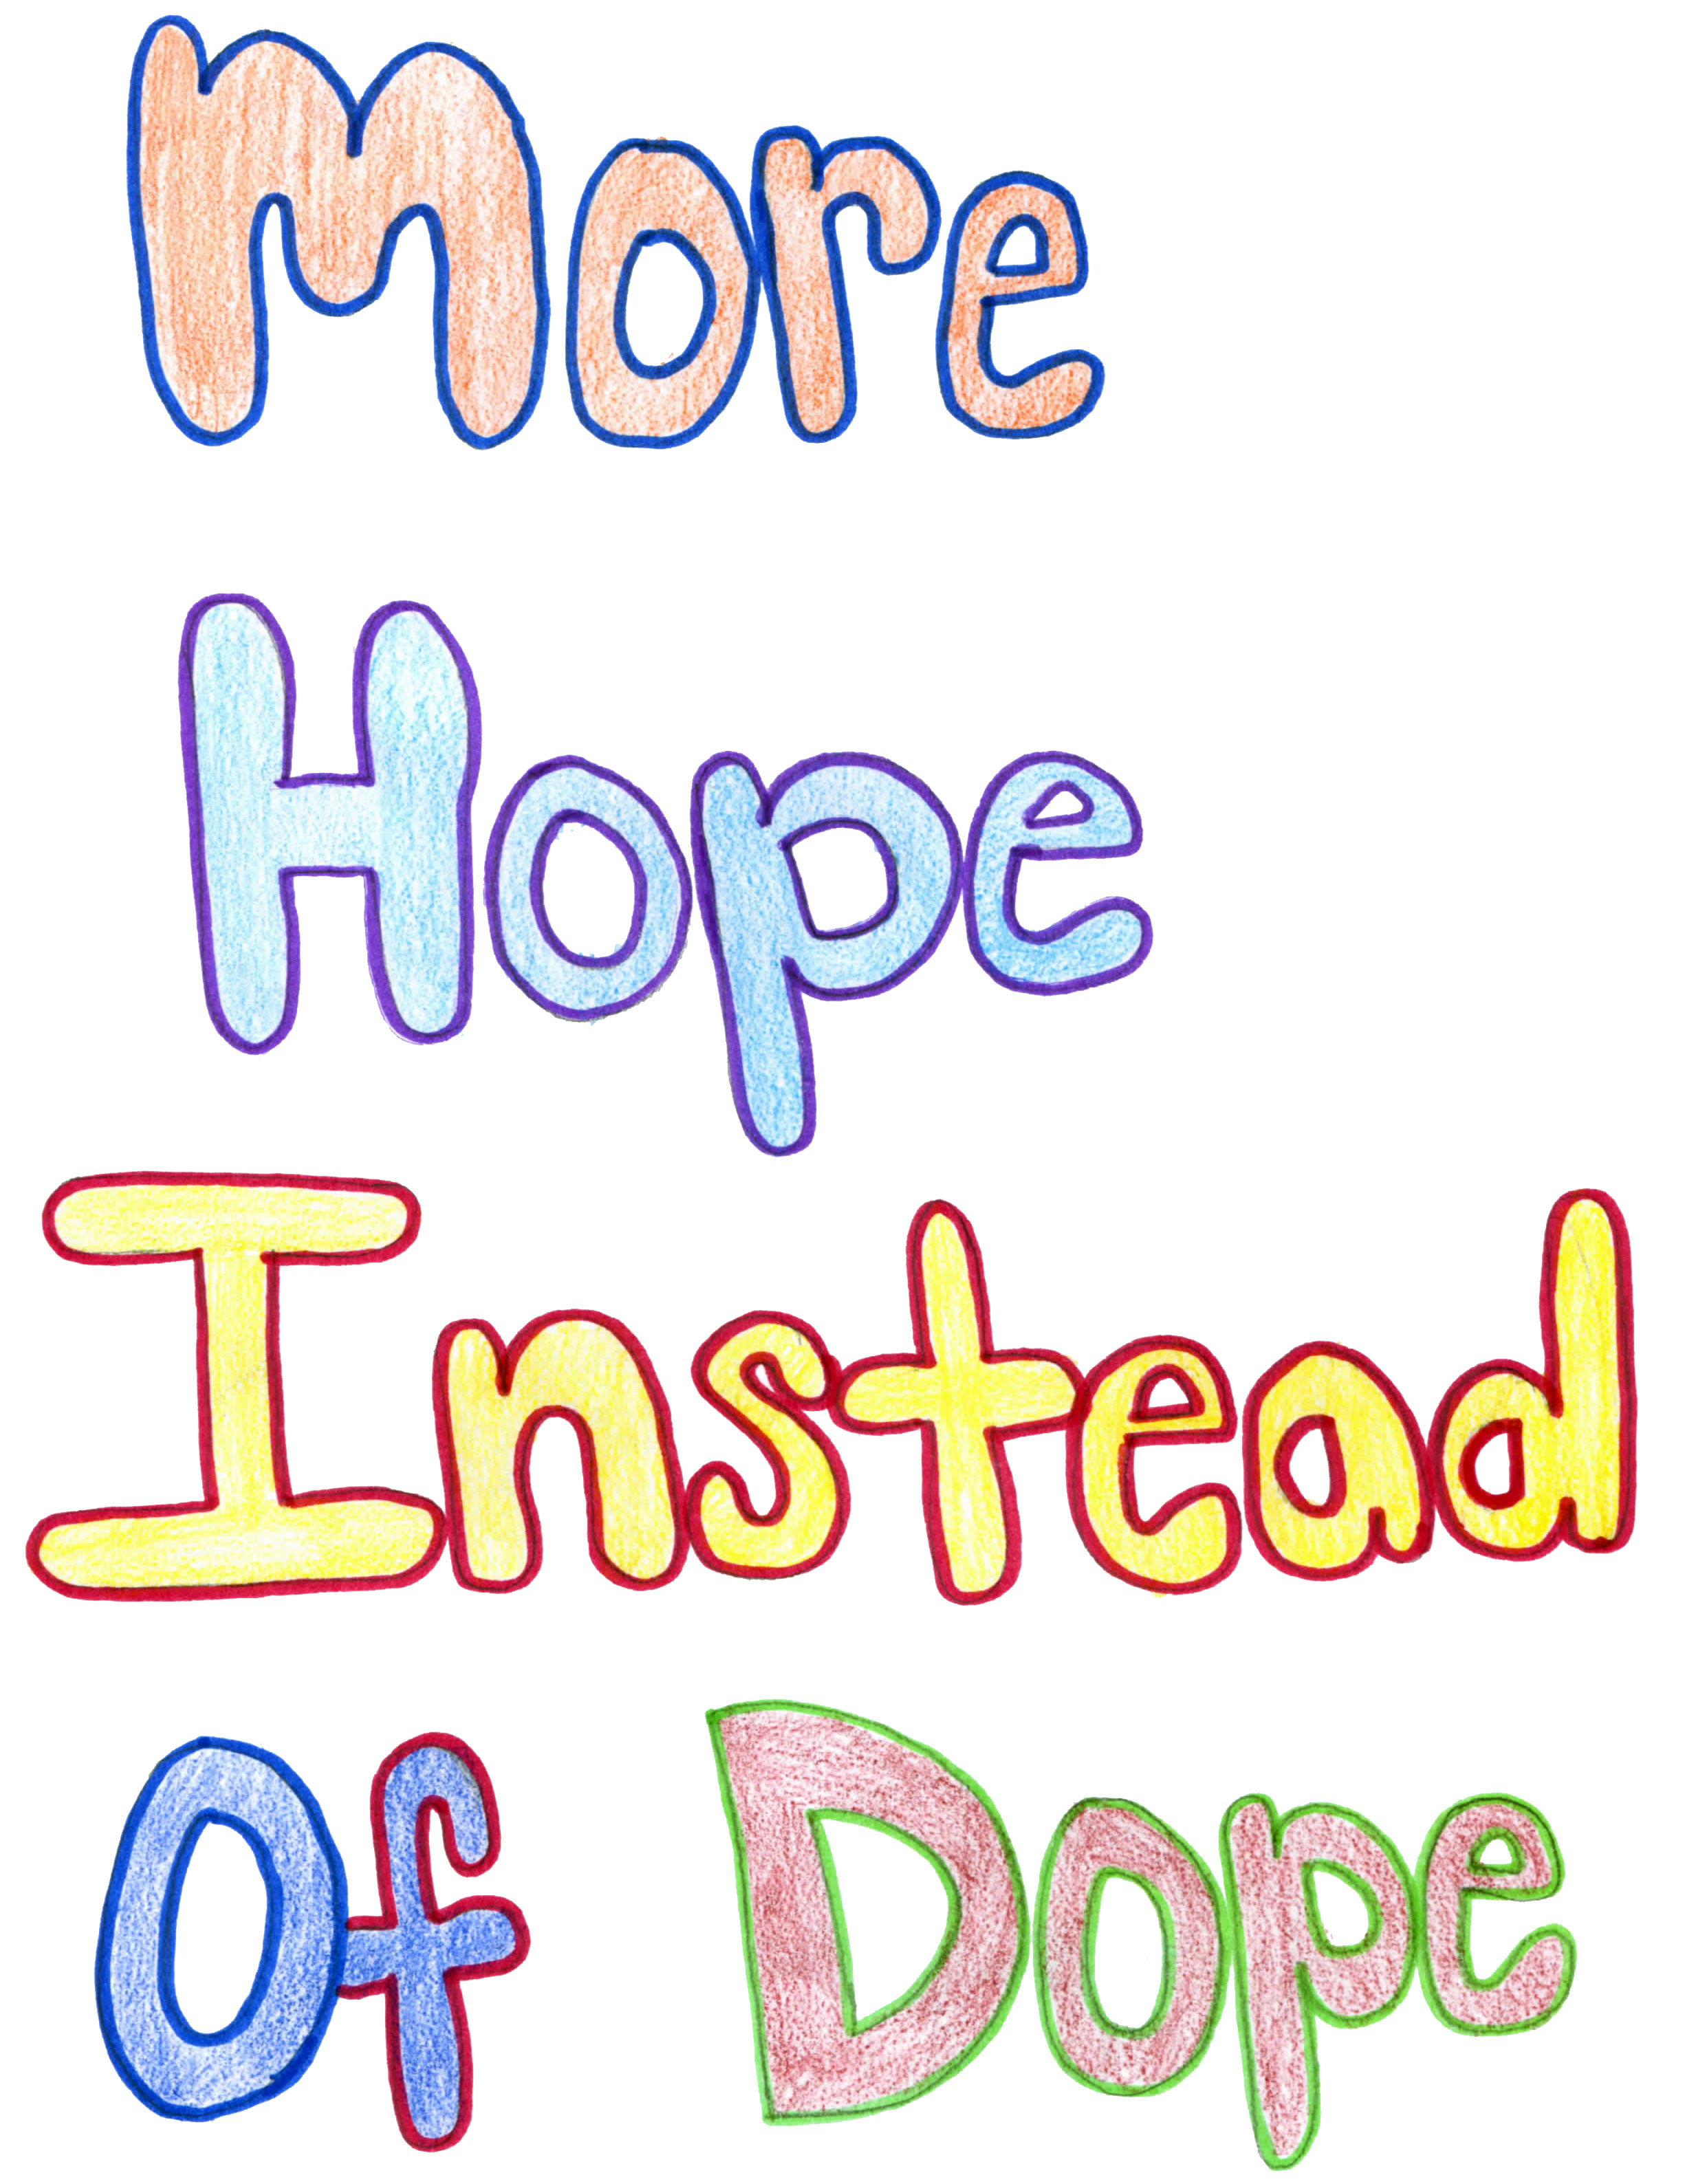 15-more-hope-instead-of-dope